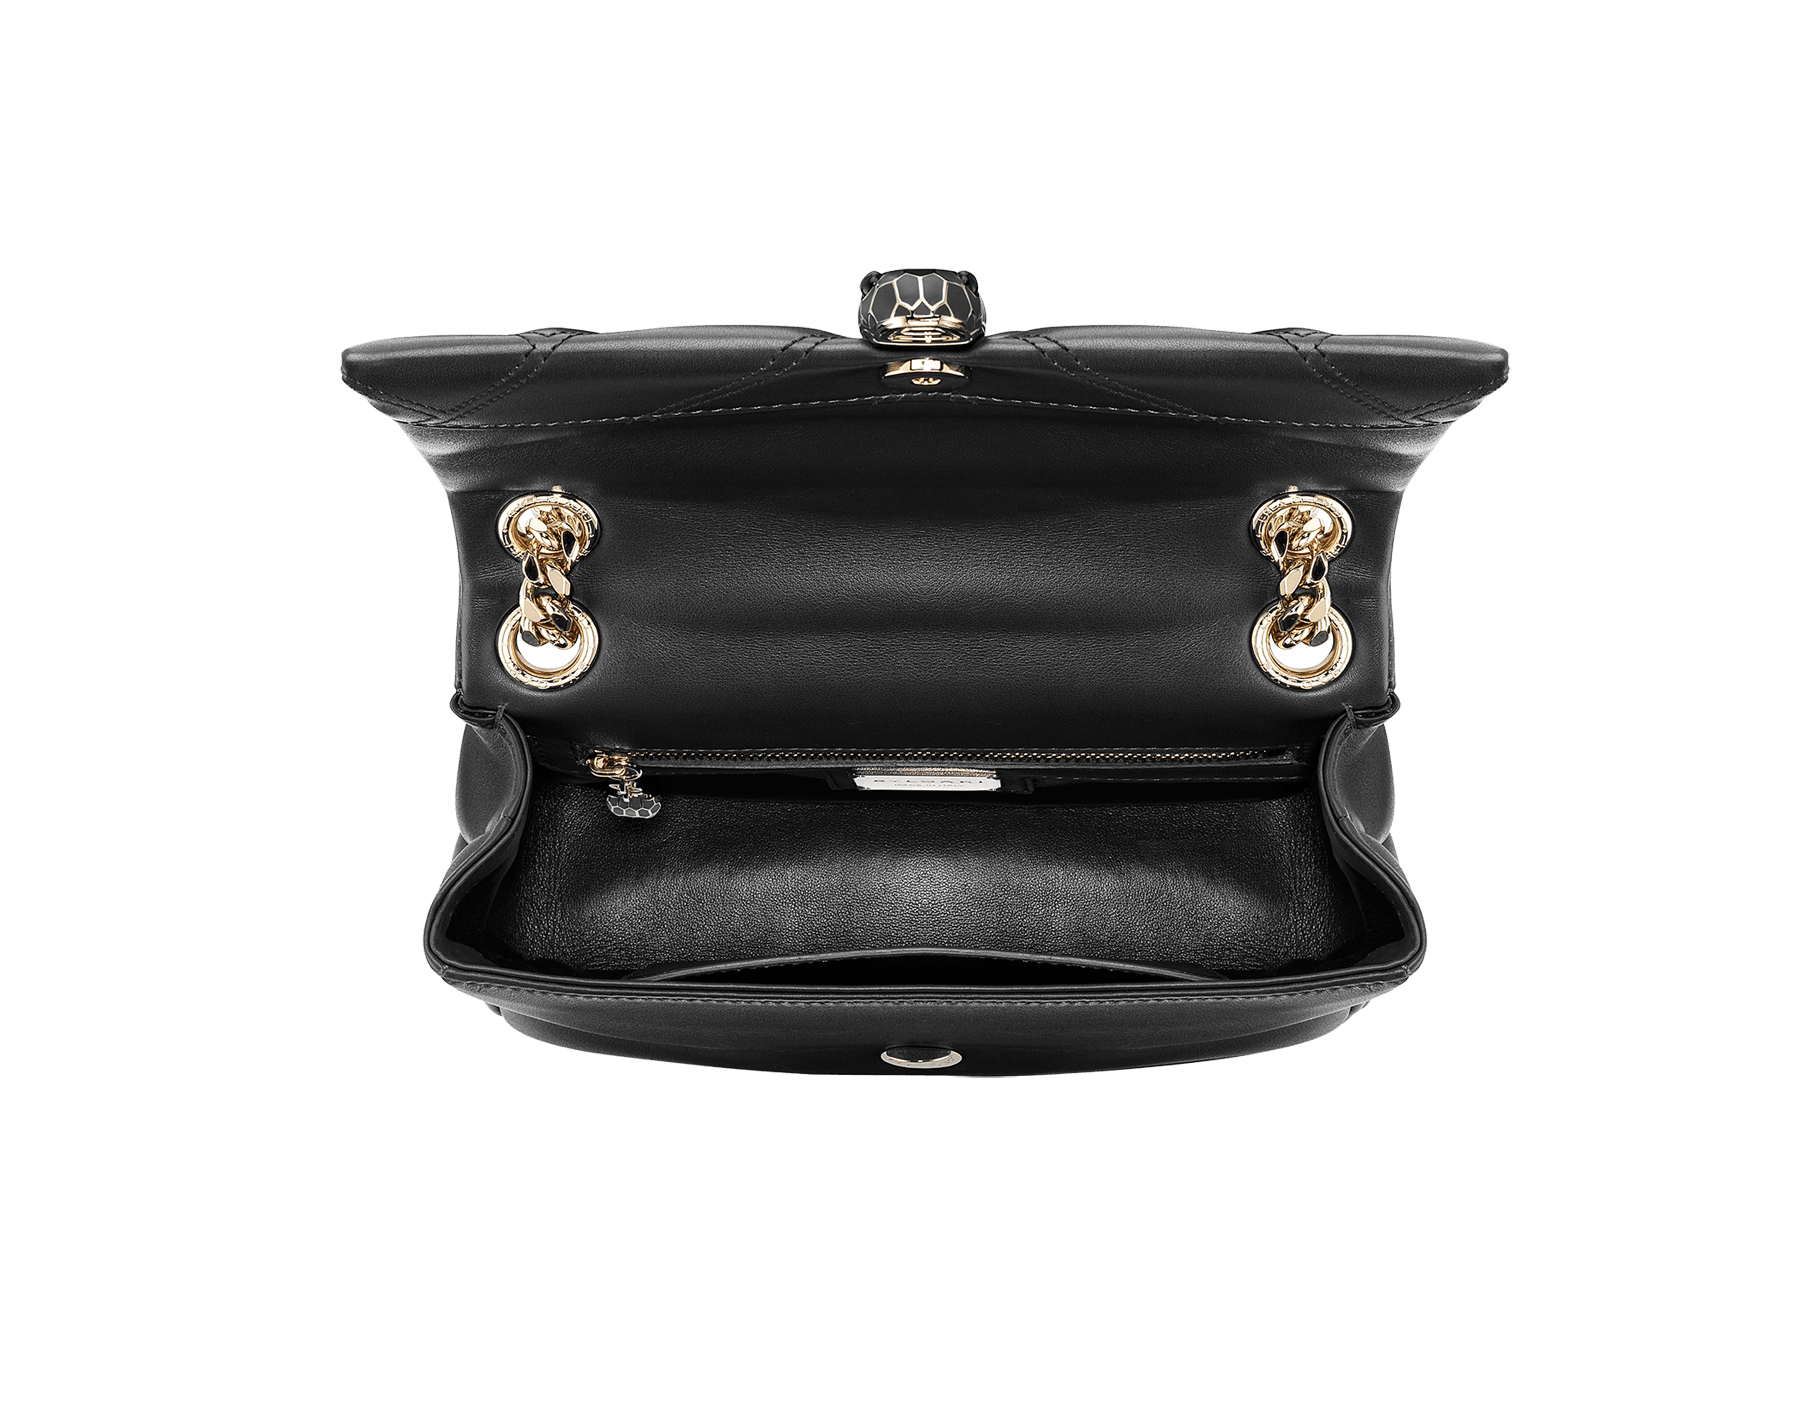 Serpenti Cabochon shoulder bag in soft matelassé black nappa leather with graphic motif and black calf leather. Snakehead closure in rose gold plated brass decorated with matte black and shiny black enamel, and black onyx eyes. 287987 image 3